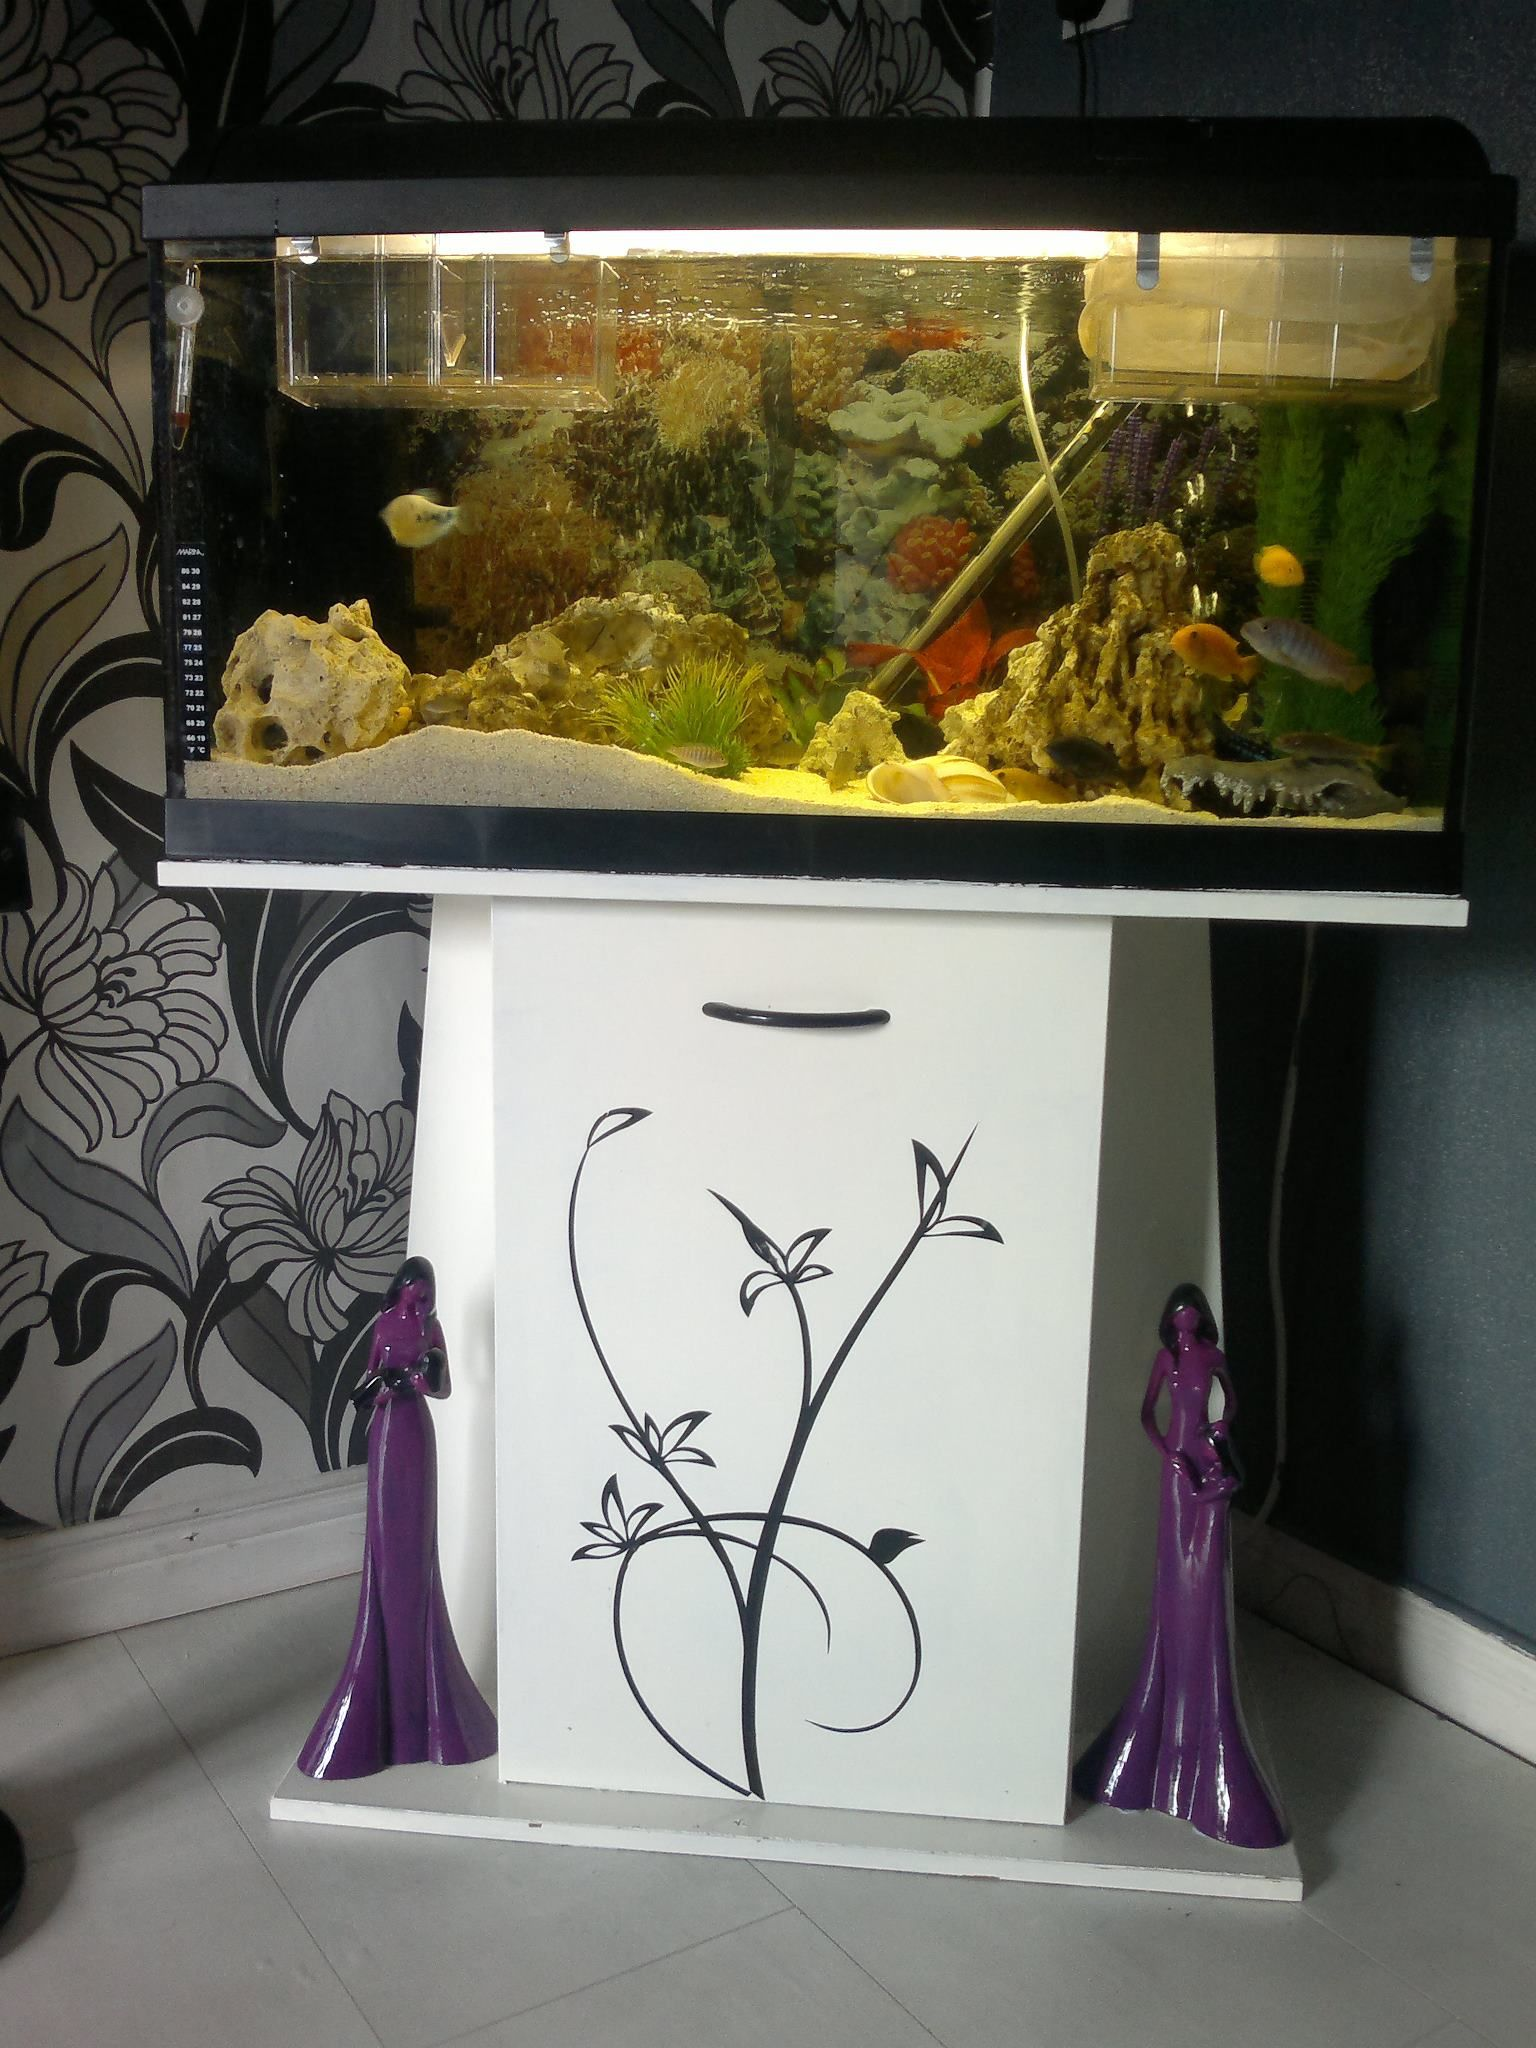 Awesome Aquarium Stand I Would Love To Make Something Like This With Images Aquarium Stand Aquarium Fish Tank